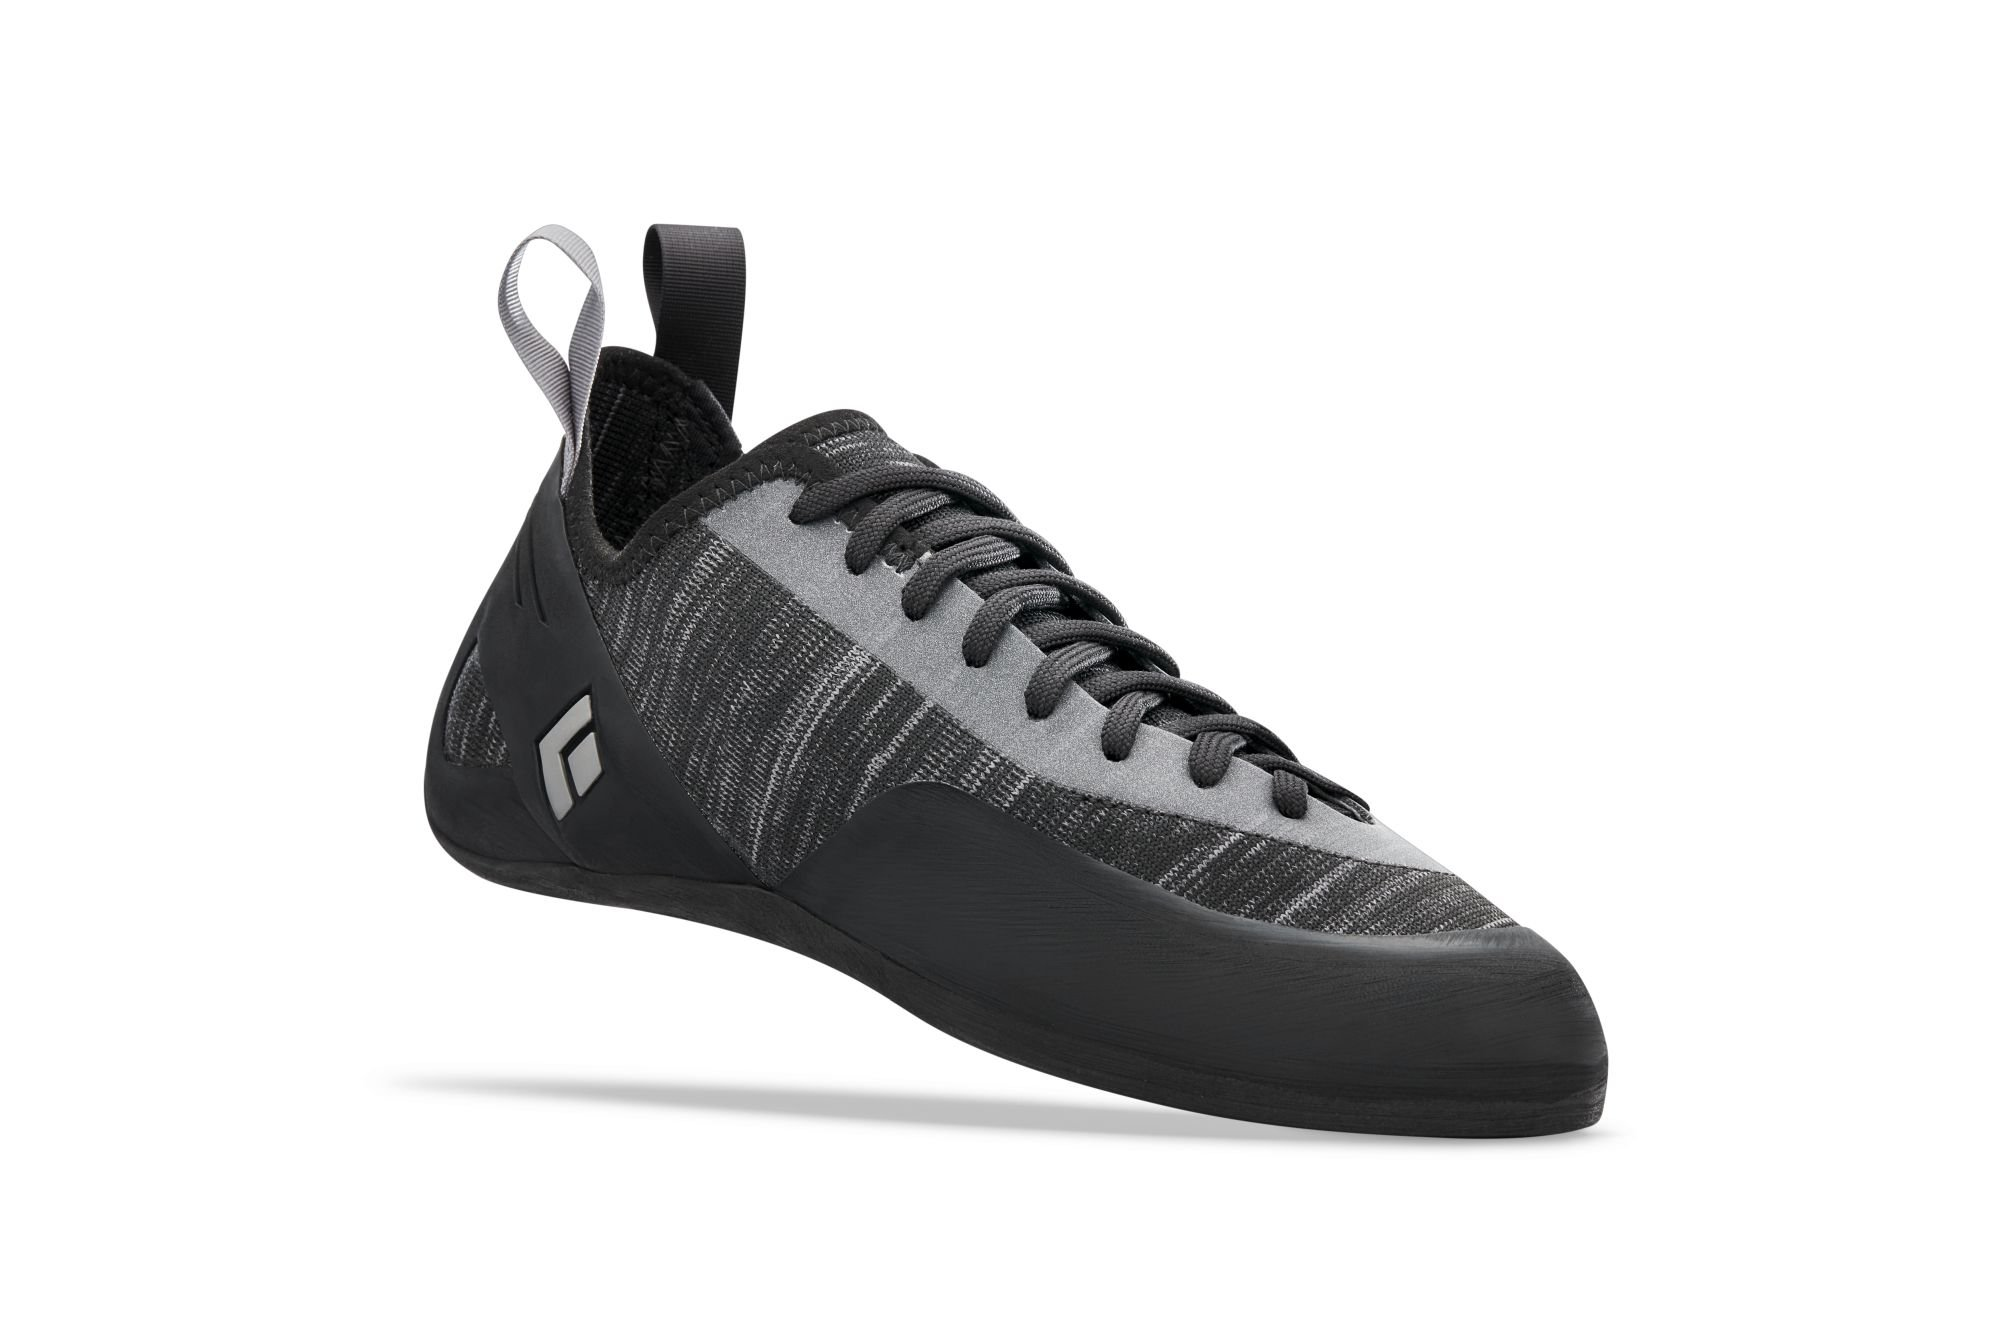 Black Diamond Momentum Lace Climbing Shoe - Men's Ash 13 by Black Diamond